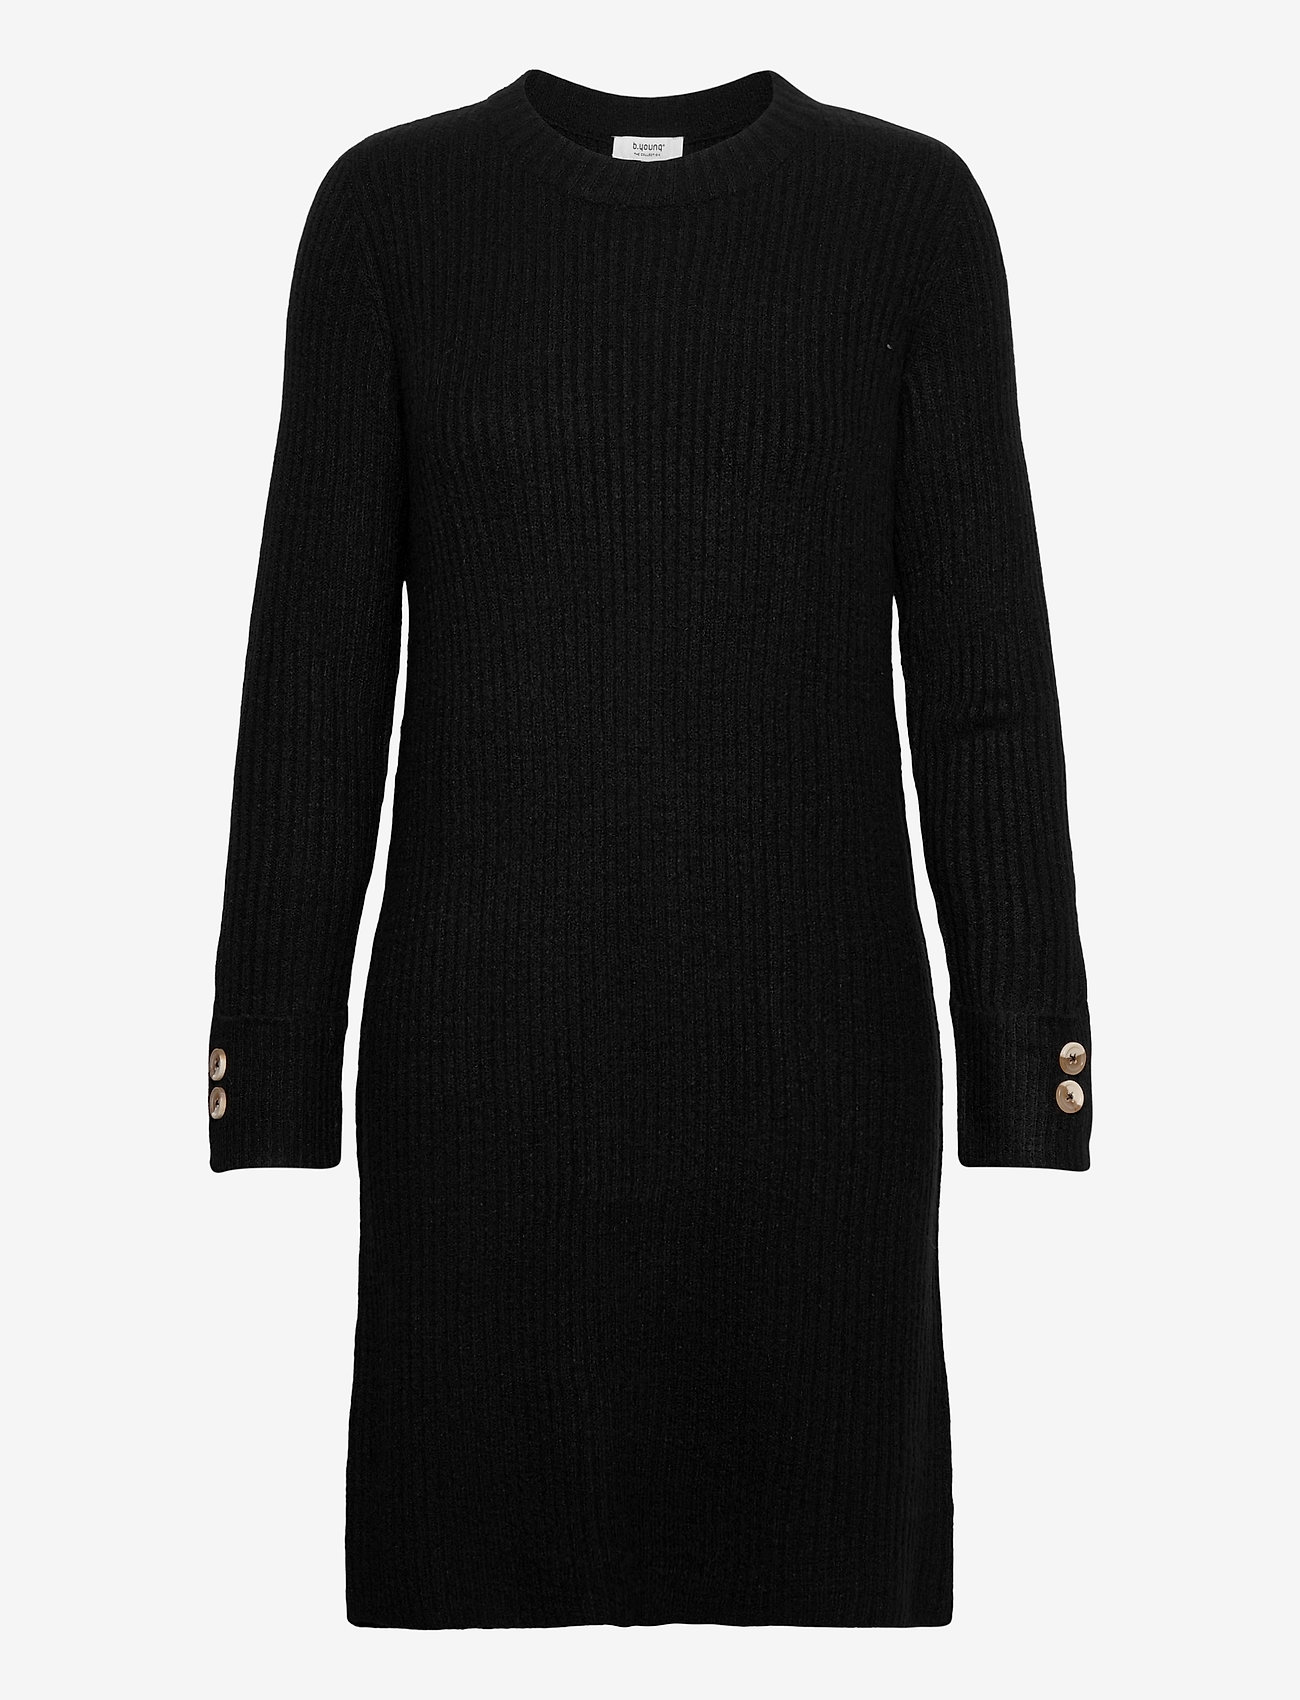 b.young - BYNORA DRESS - - strikkjoler - black - 0